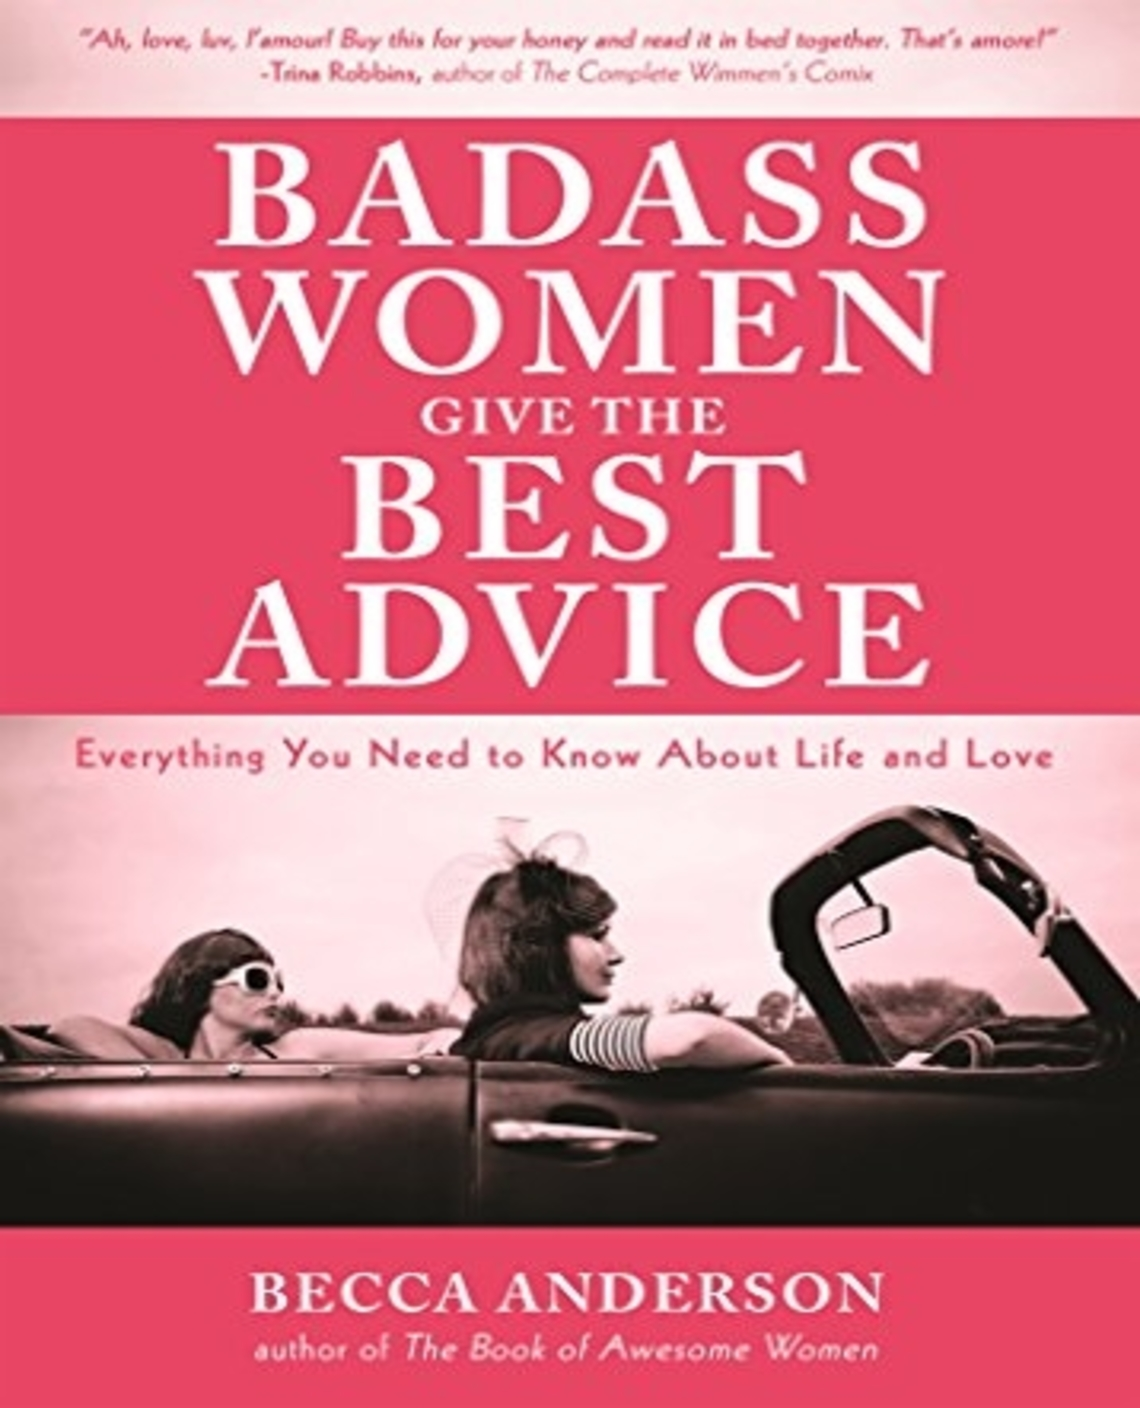 5 sassy self help books for single women that aren't corny - the